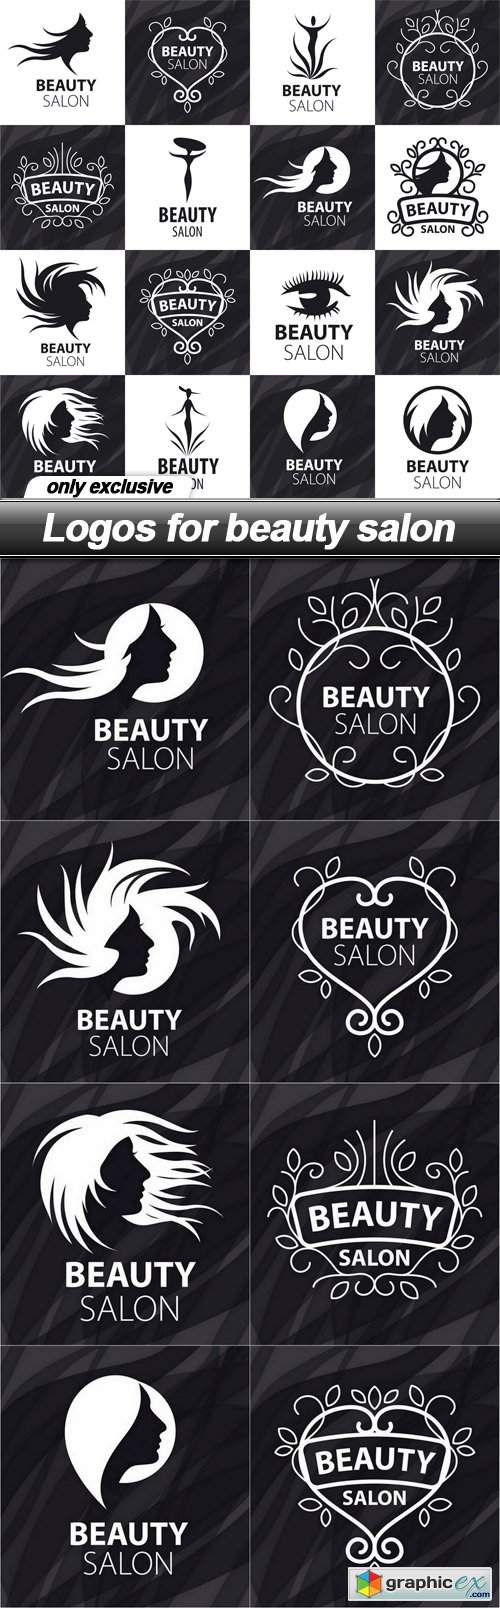 Logos for beauty salon - 9 EPS